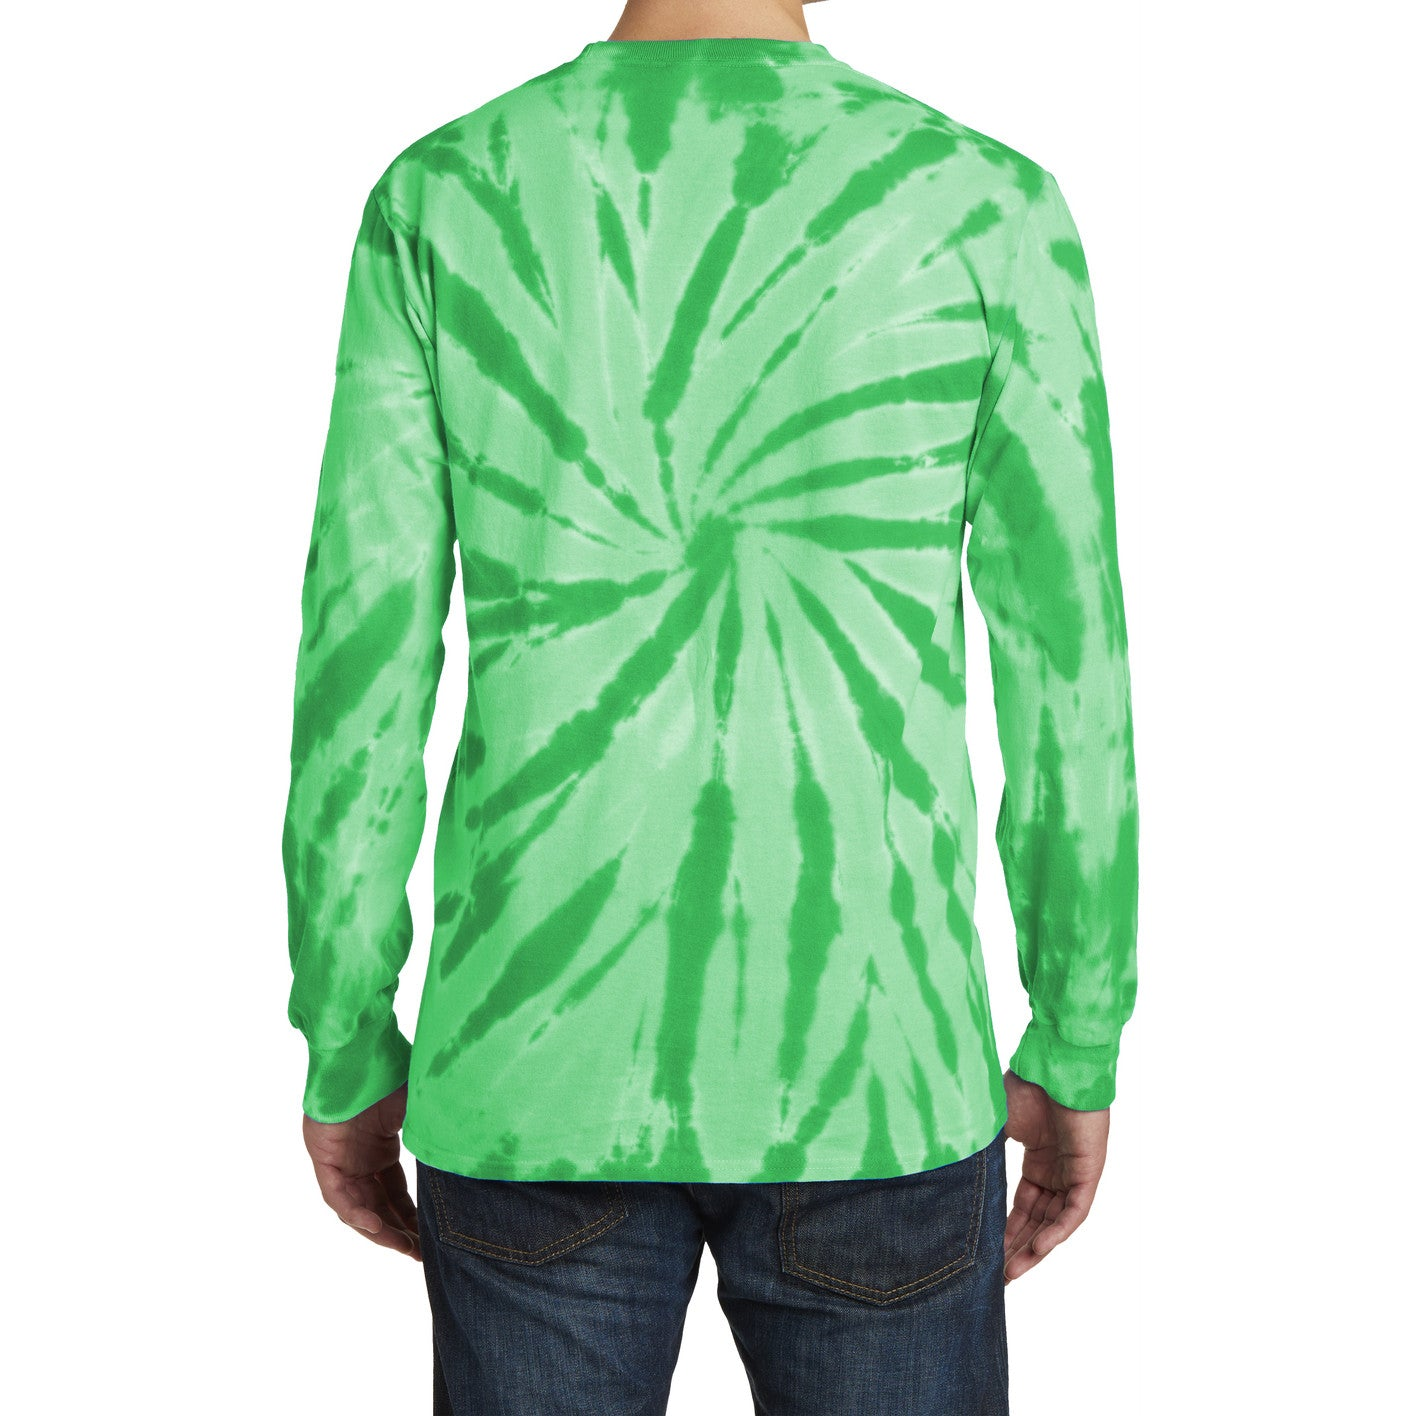 Men's Tie-Dye Long Sleeve Tee - Kelly - Back